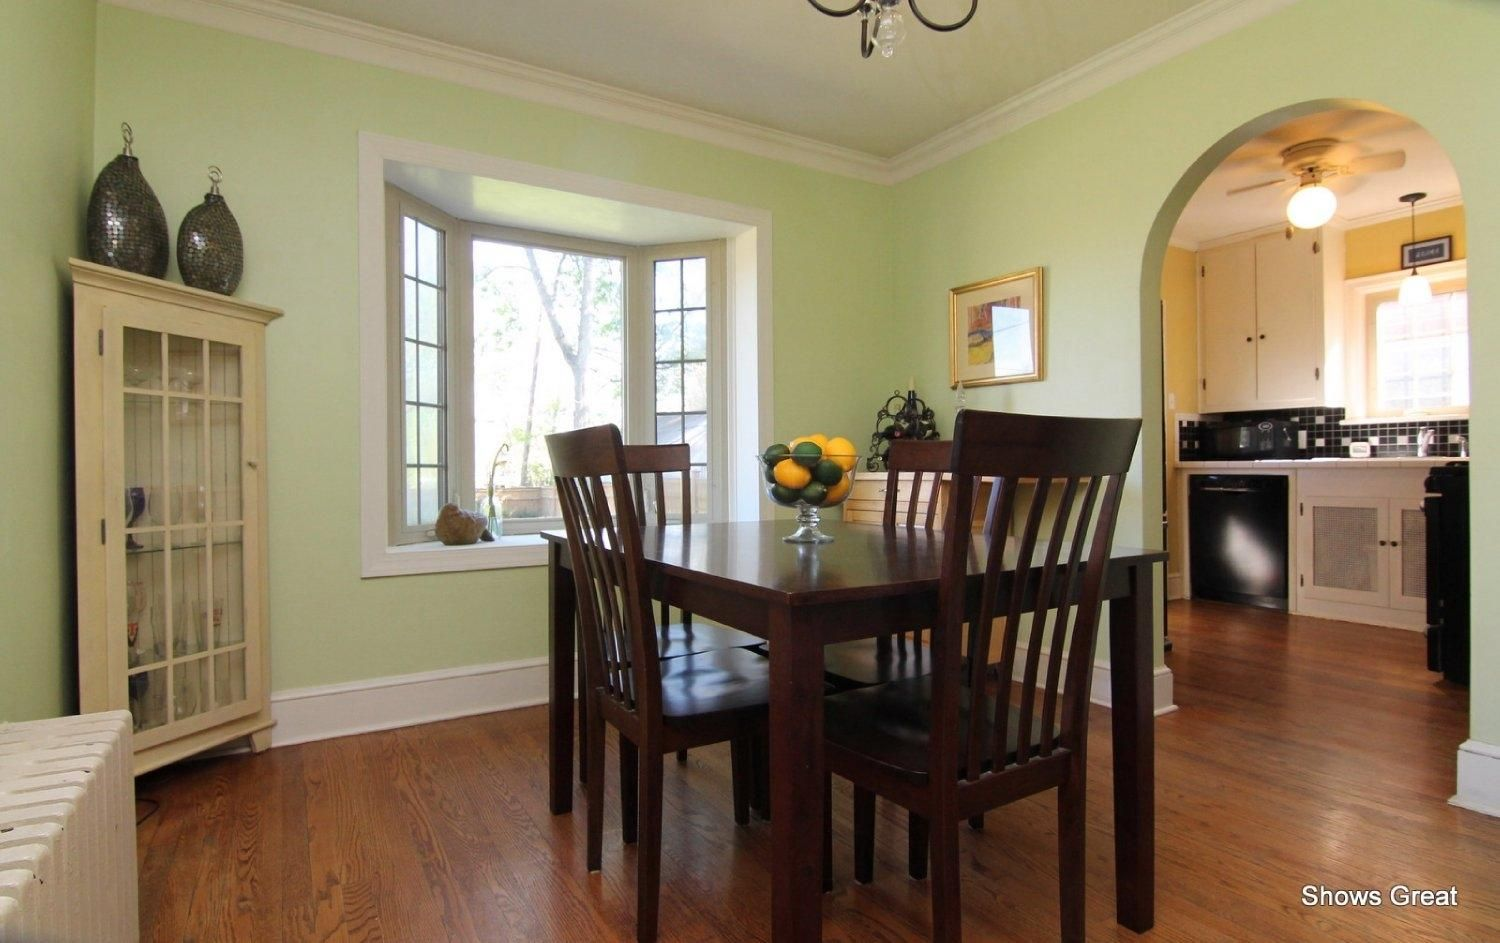 Crown molding in the old dining room | Home decor, Dining ...